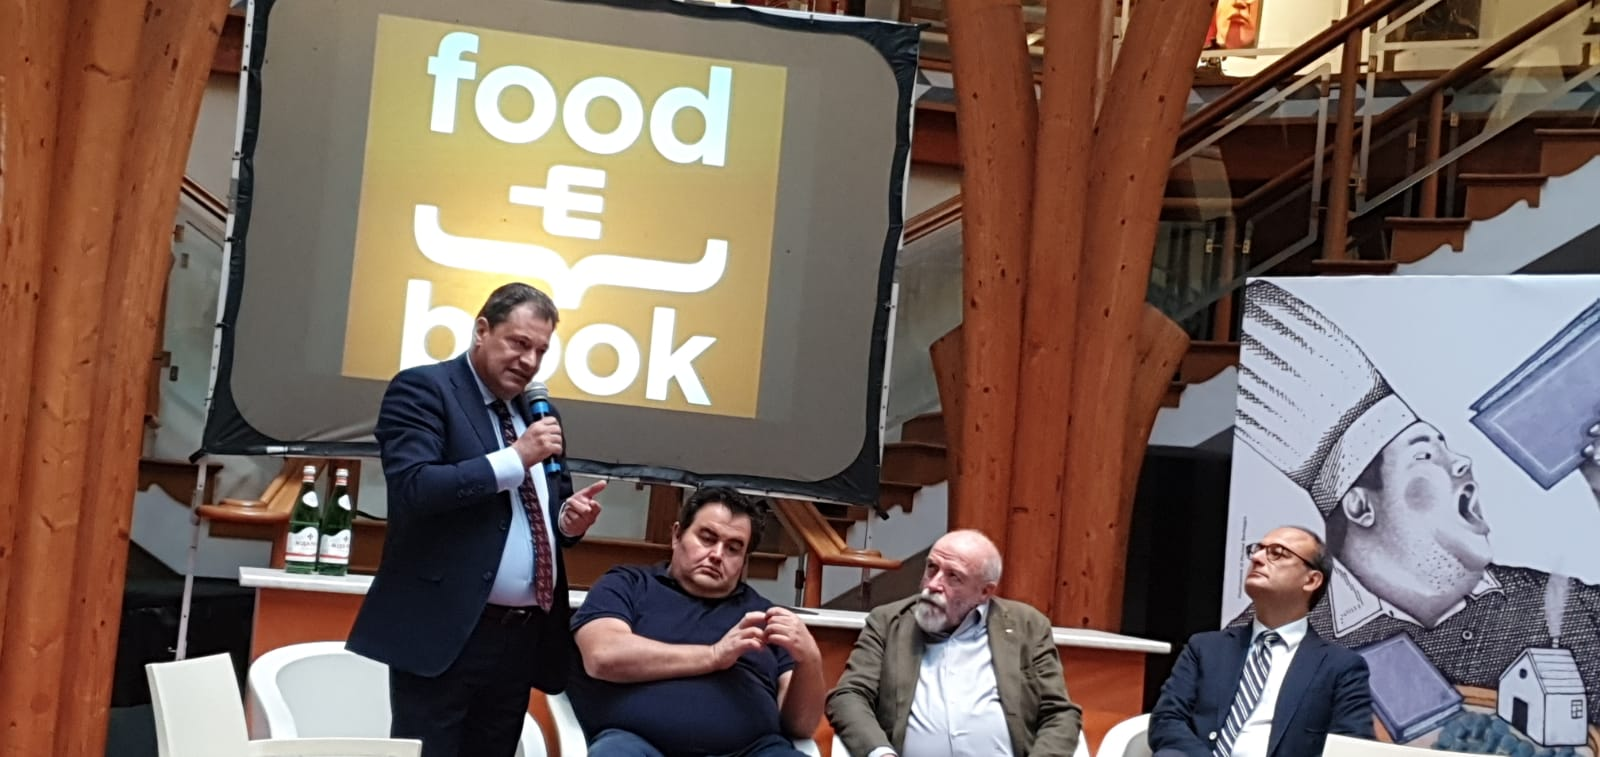 Il Presidente della RE.NA.I.A. Luigi Valentini al Food & Book di Montecatini.